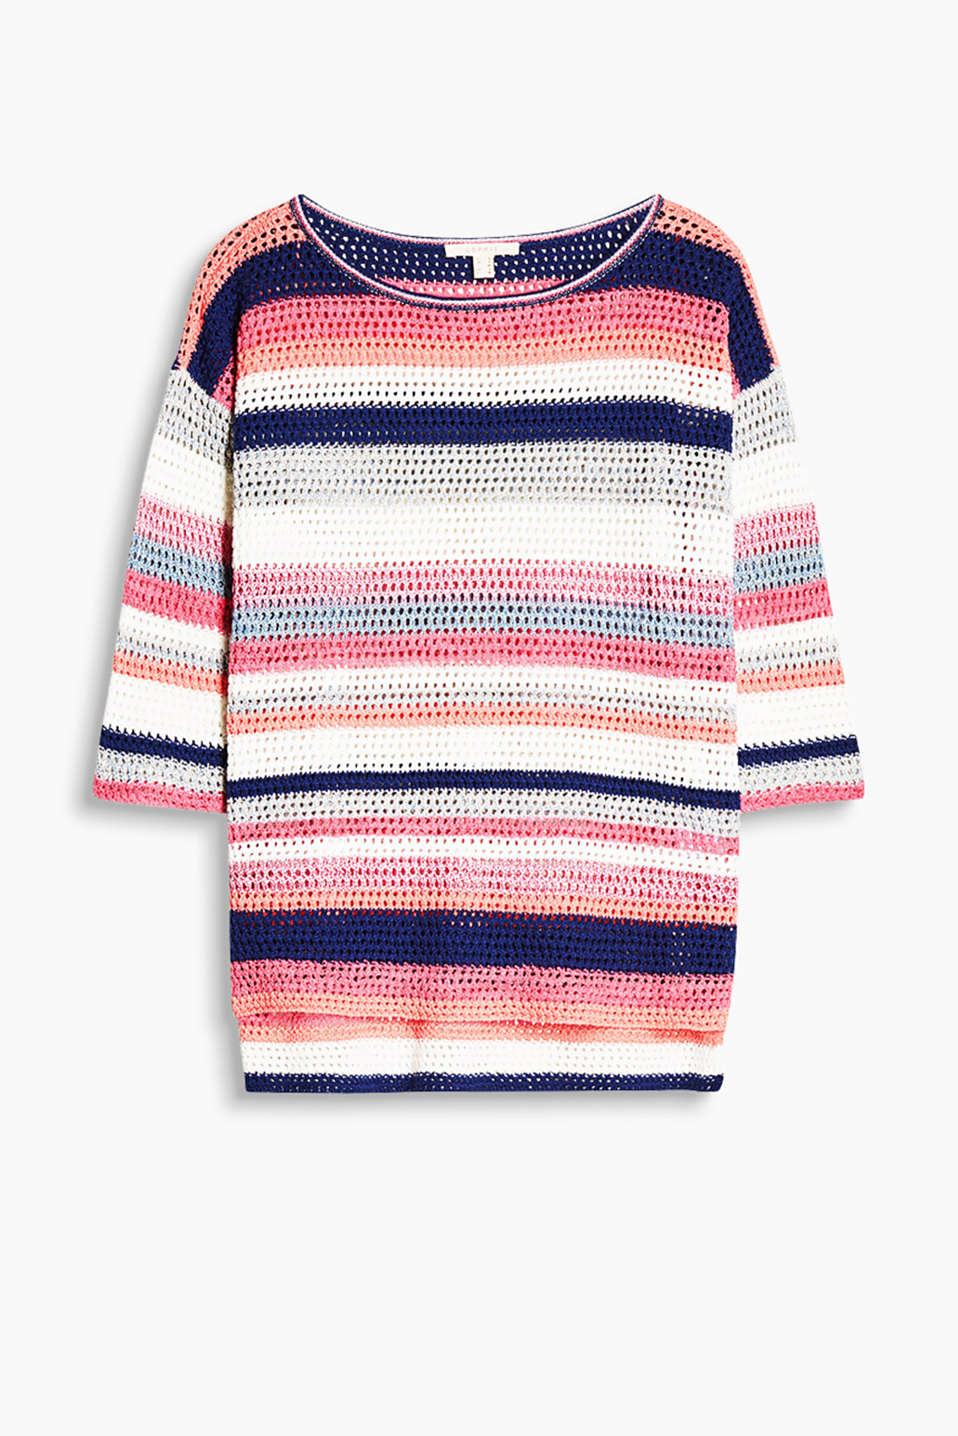 Airy crocheted jumper with block stripes and glittering lurex effects